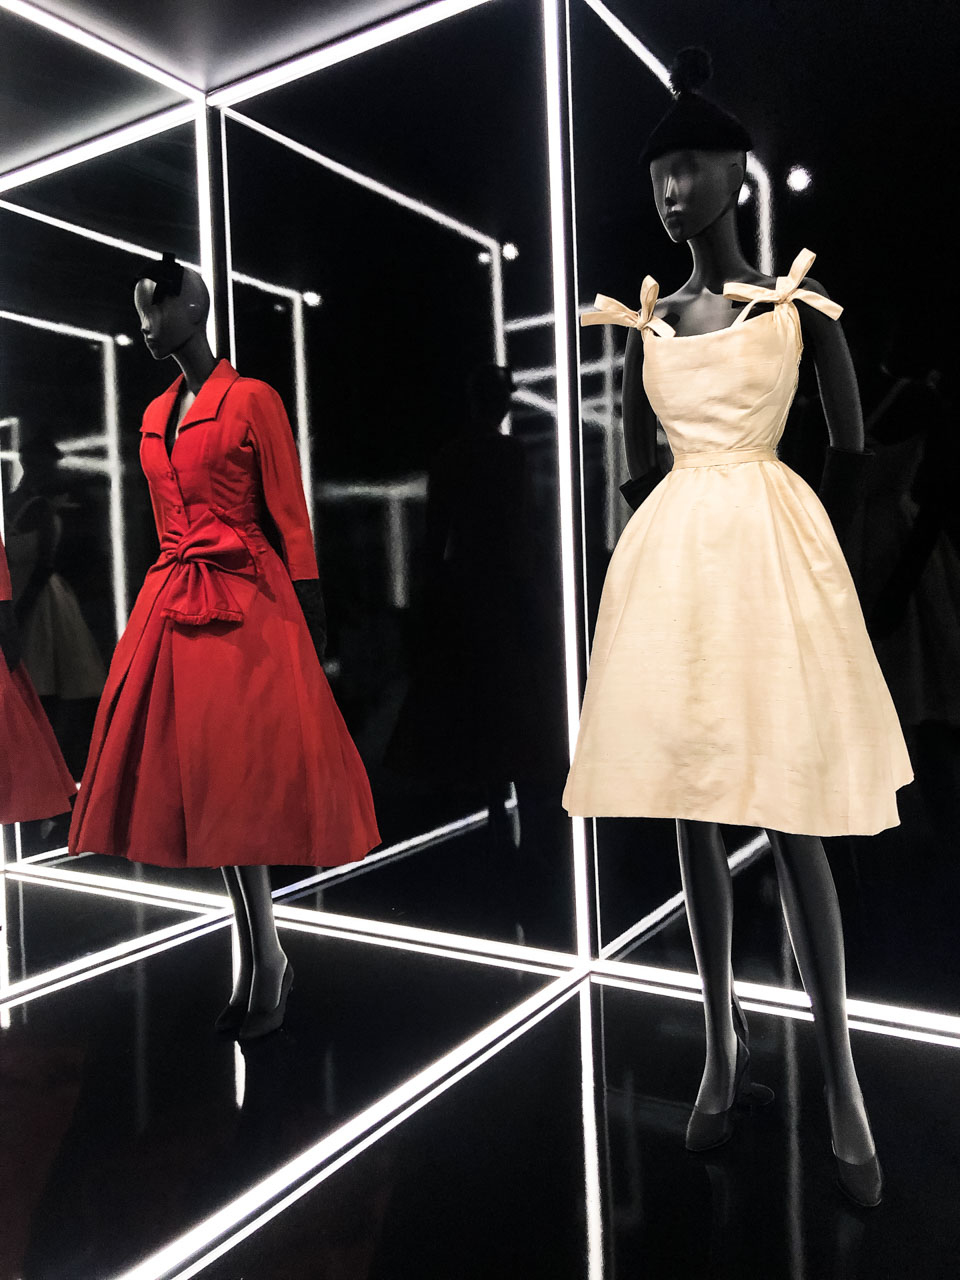 A Dior coat and dress at the Victoria and Albert Museum in London